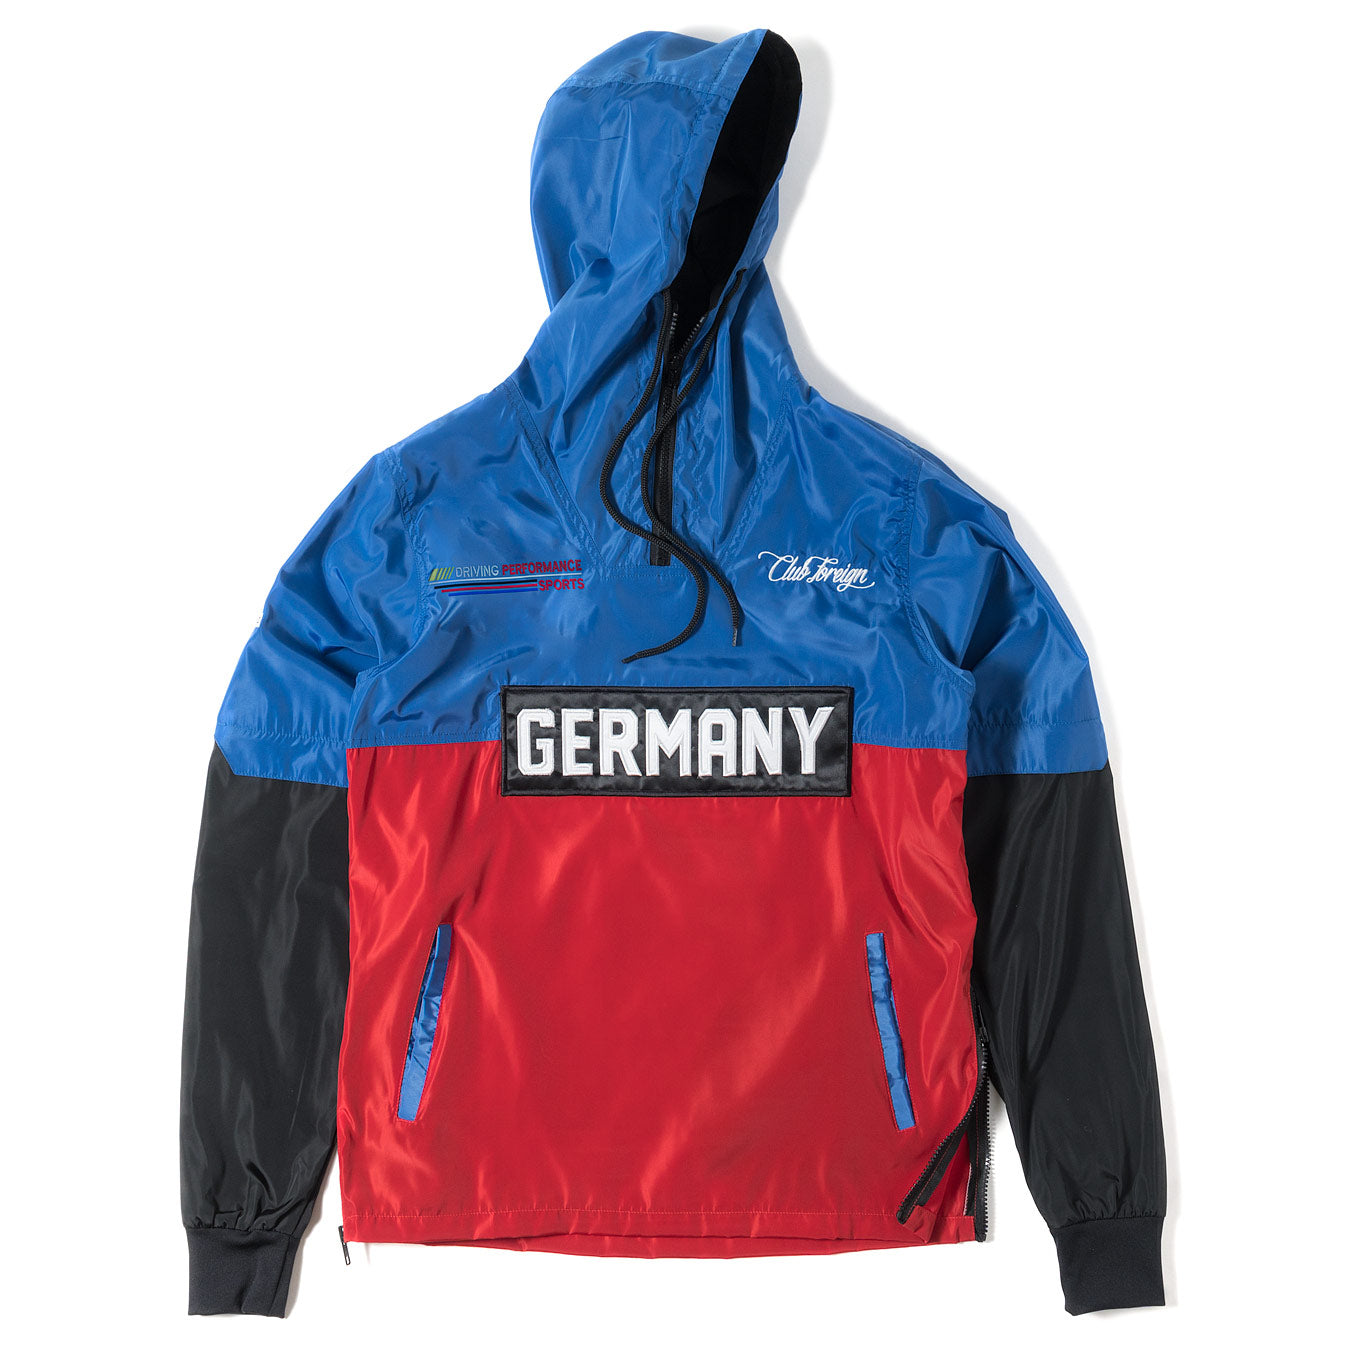 02ade1045 ClubForeign Performance Windbreaker Jacket Blue Red Black - Trends Society